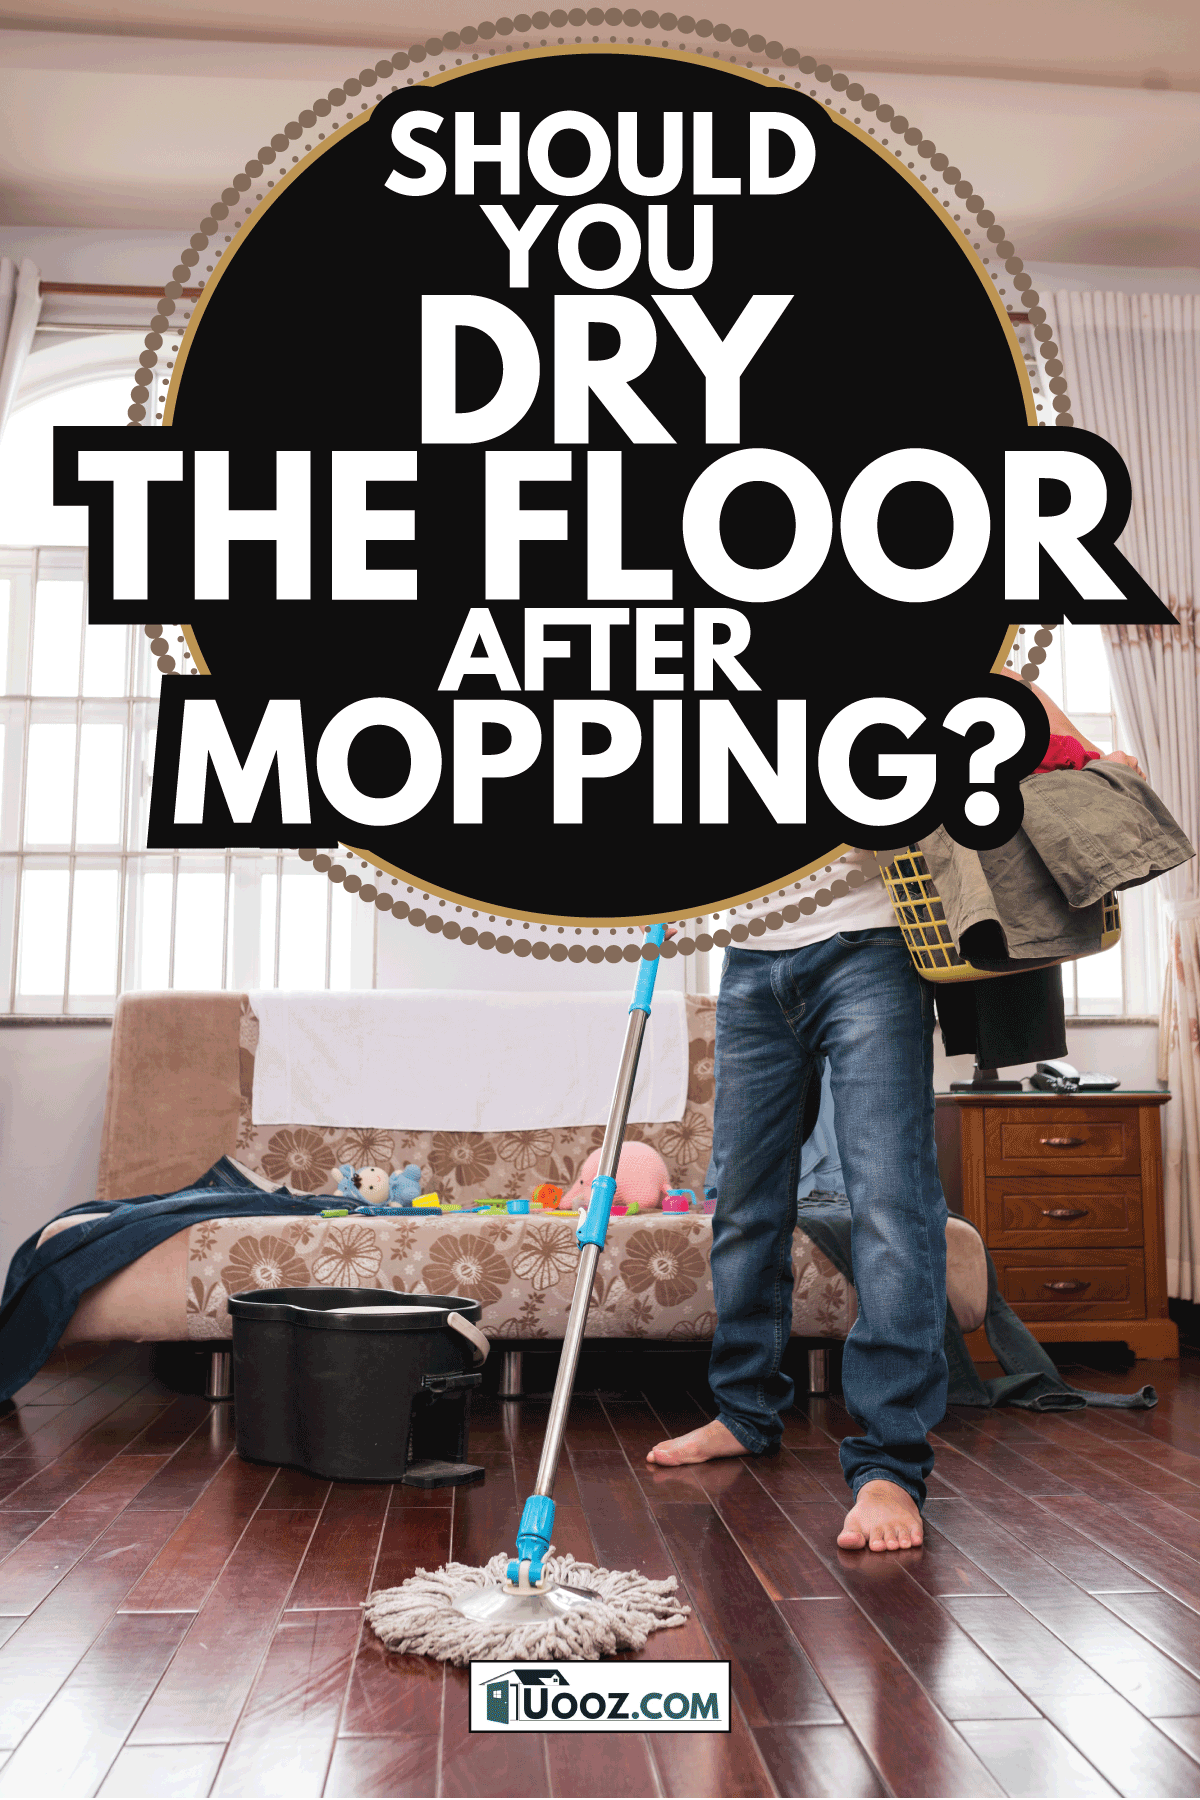 Man mopping floor while holding clothes basket. Should You Dry The Floor After Mopping